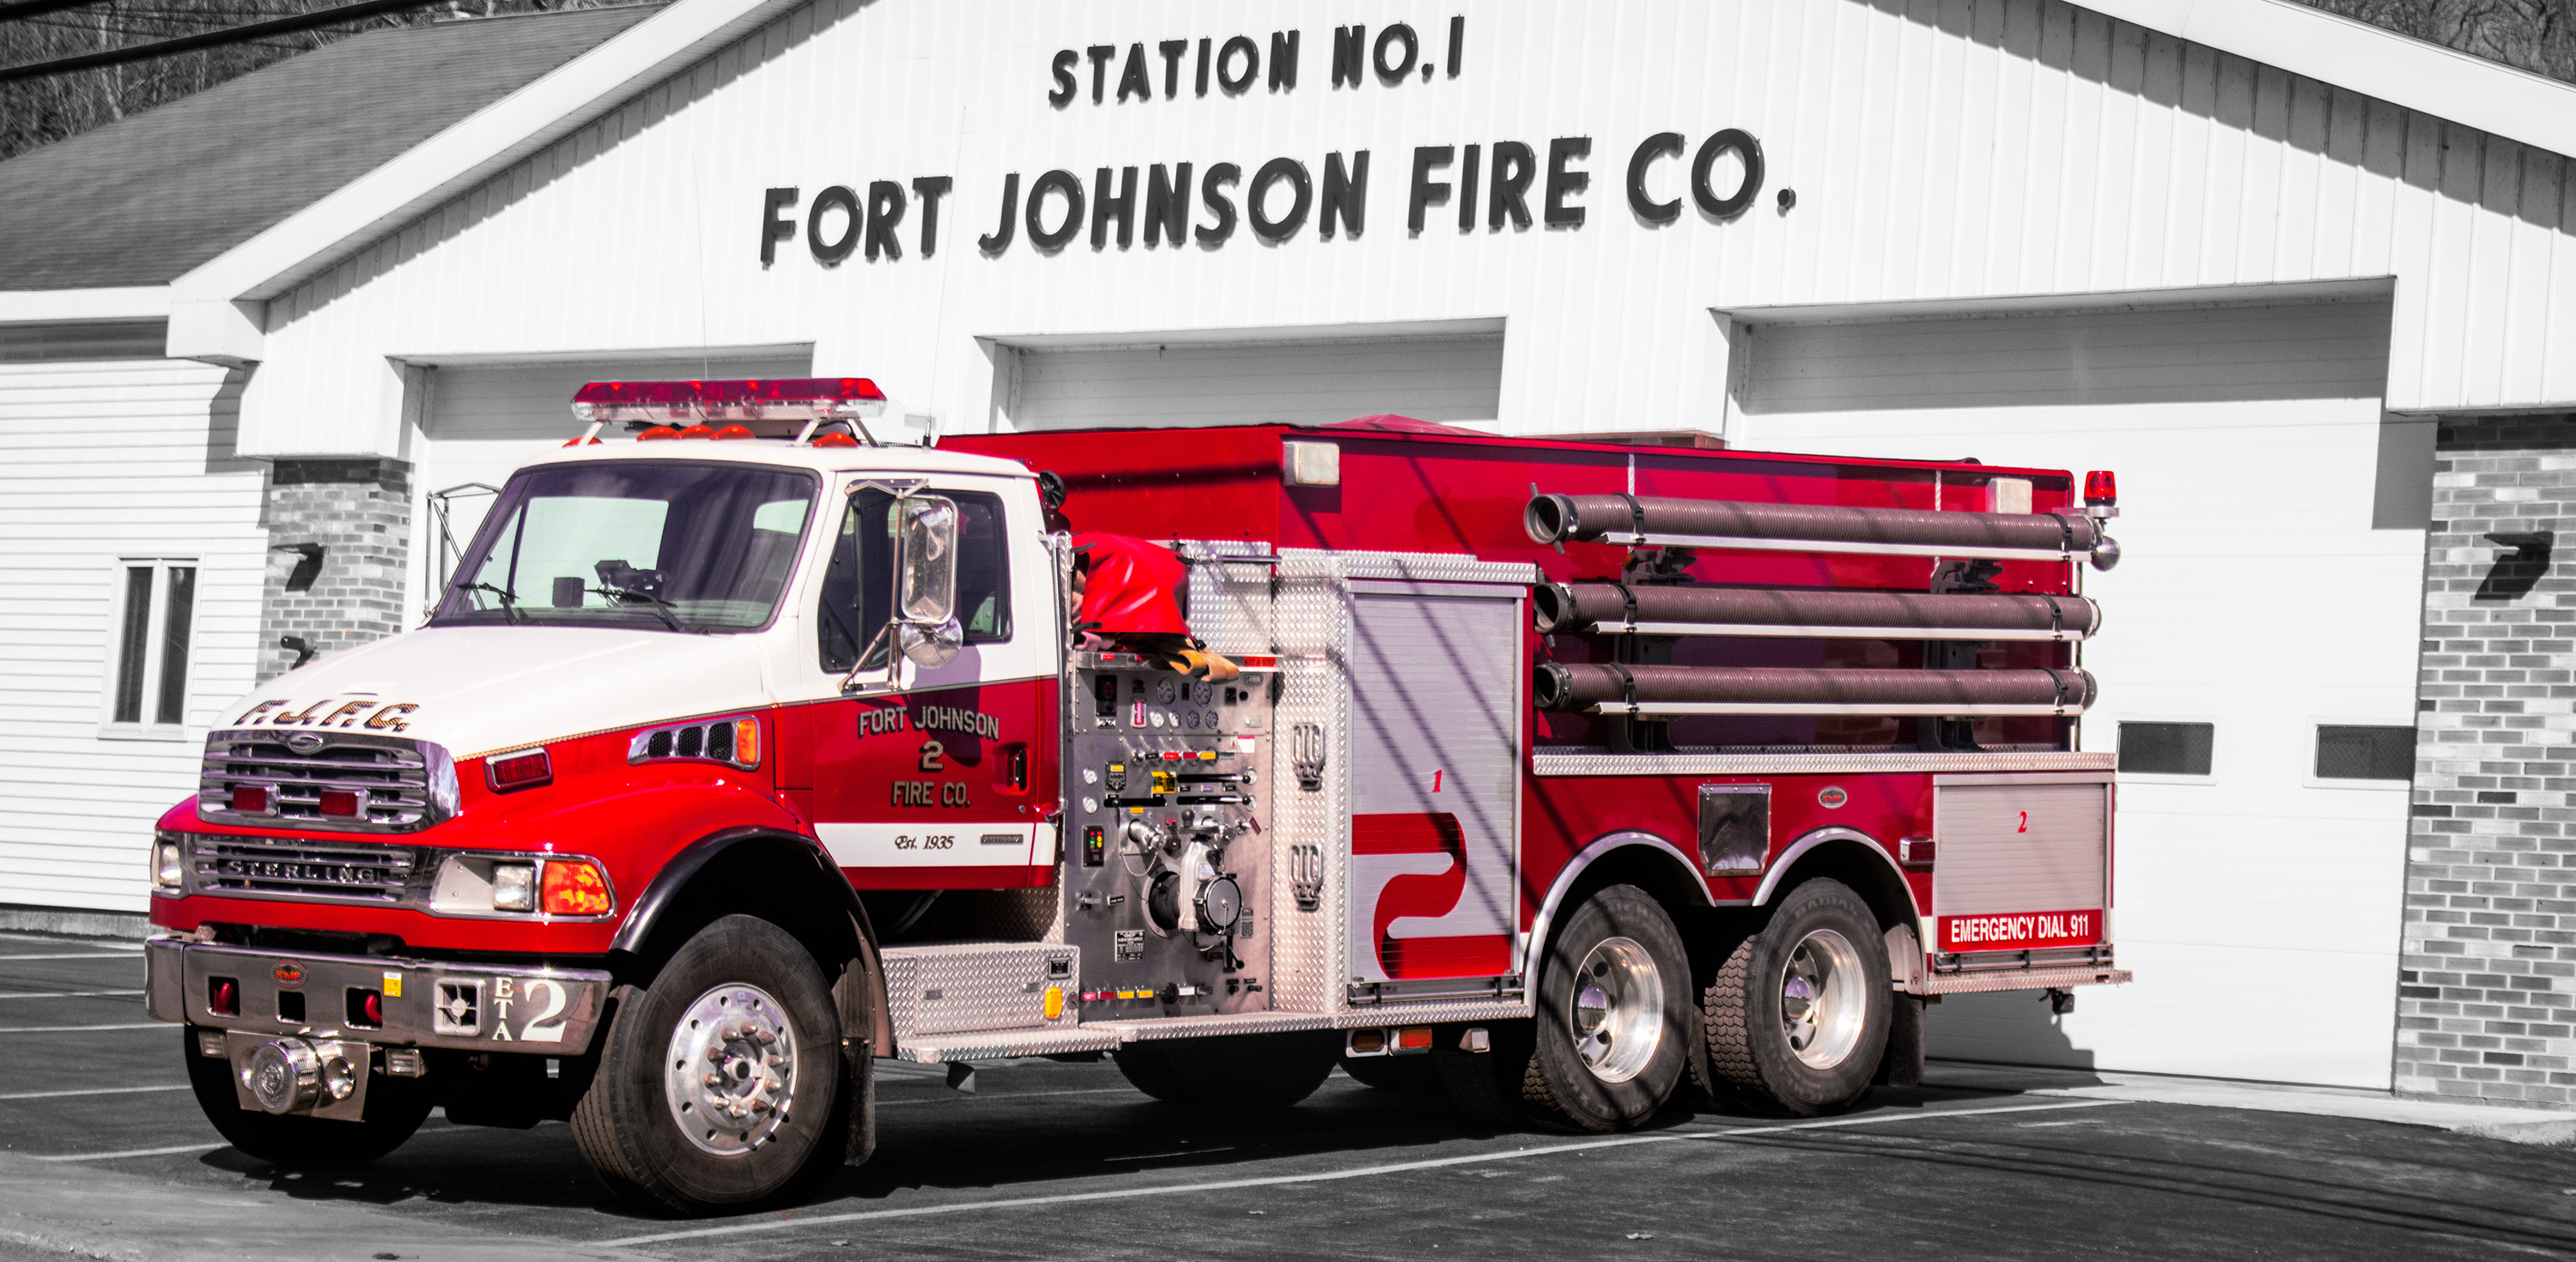 A photo of Tanker 2, a fire truck, with selective color showing a back background.